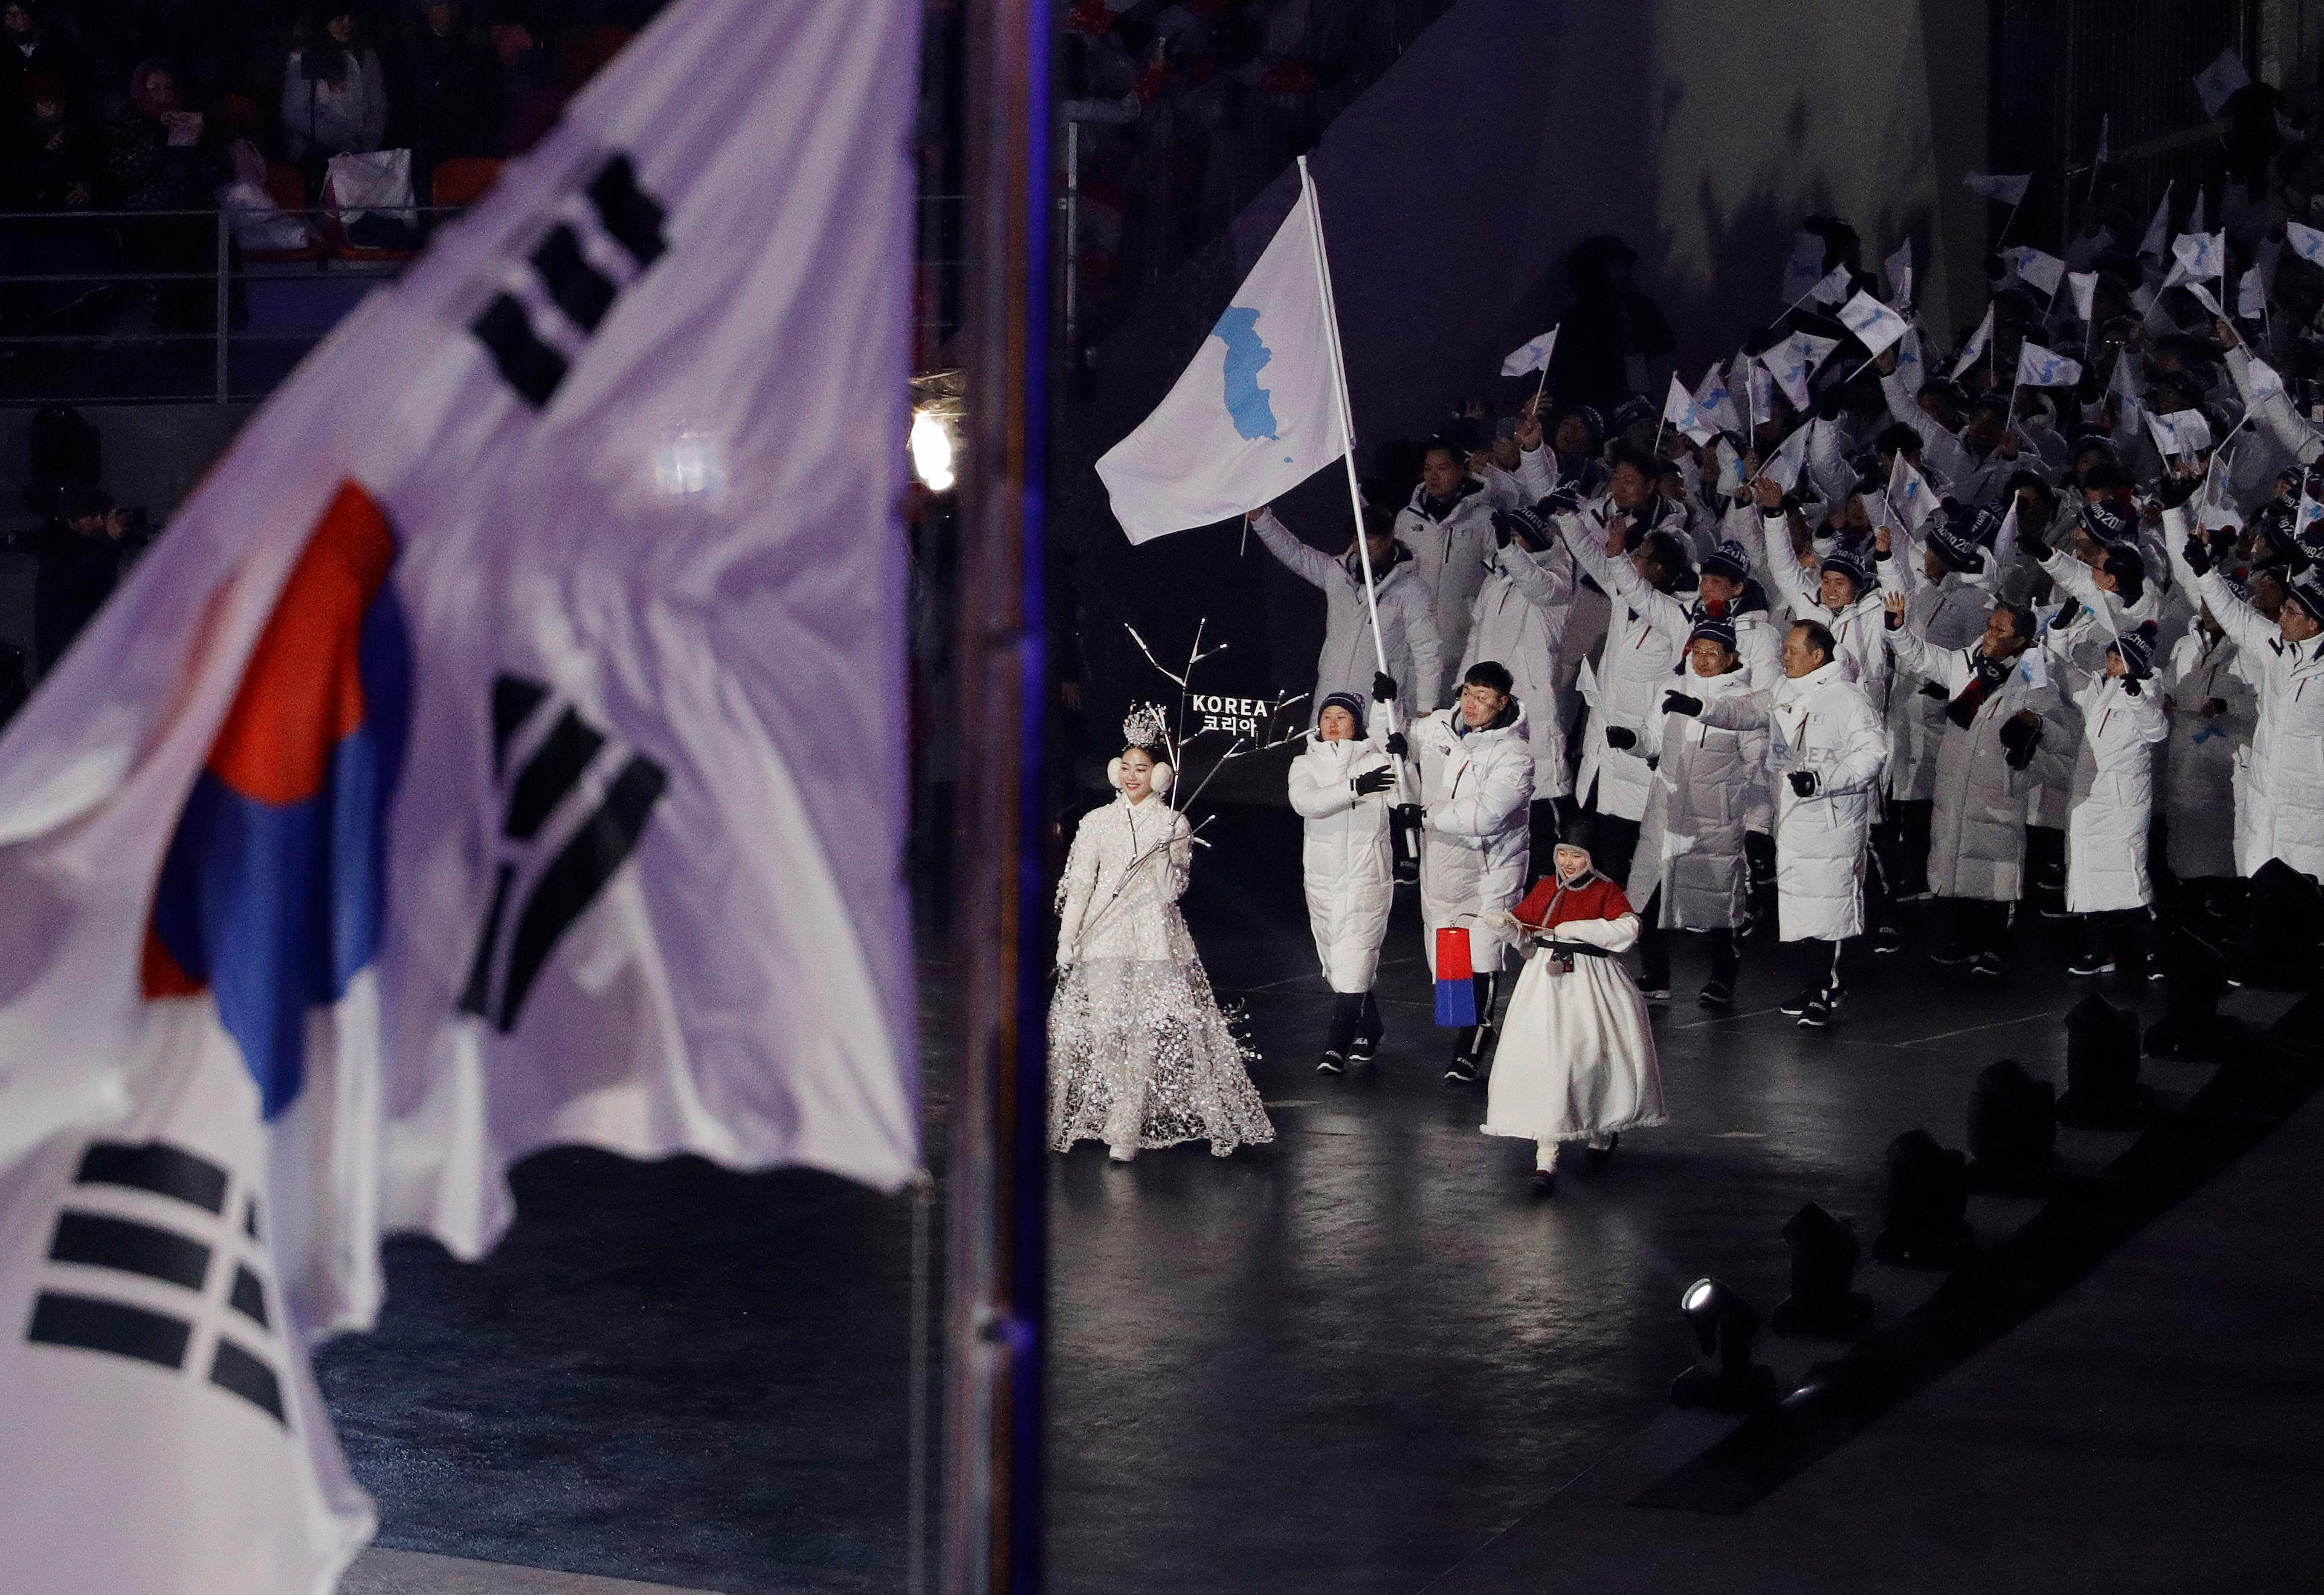 North Korean and South Korean athletes arrive during the opening ceremony of the 2018 Winter Olympics in Pyeongchang, South Korea, Friday, Feb. 9, 2018. (AP Photo/David J. Phillip,Pool)